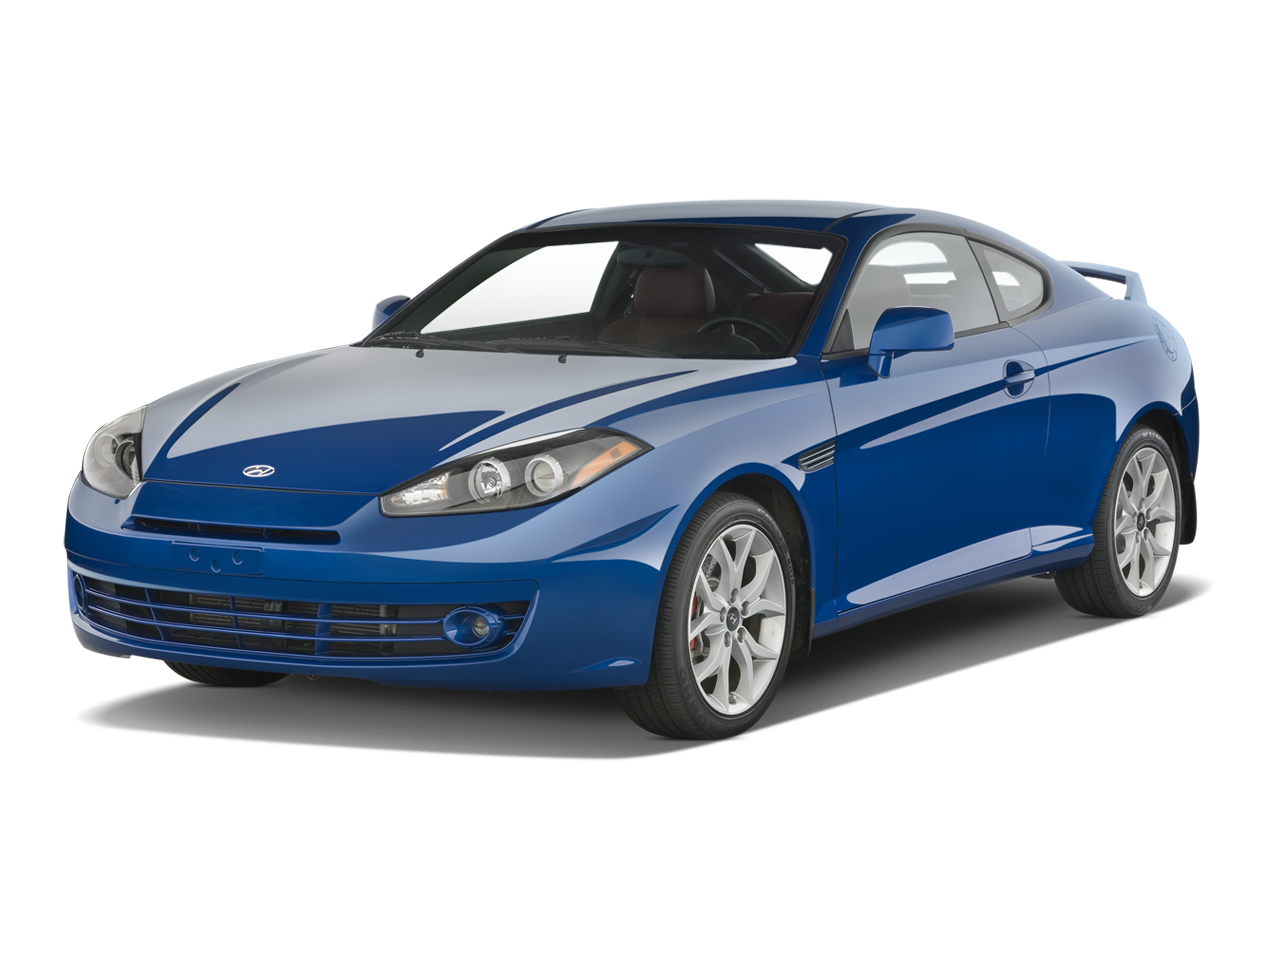 2008 hyundai tiburon gt v6 hyundai sport coupe review automobile magazine. Black Bedroom Furniture Sets. Home Design Ideas